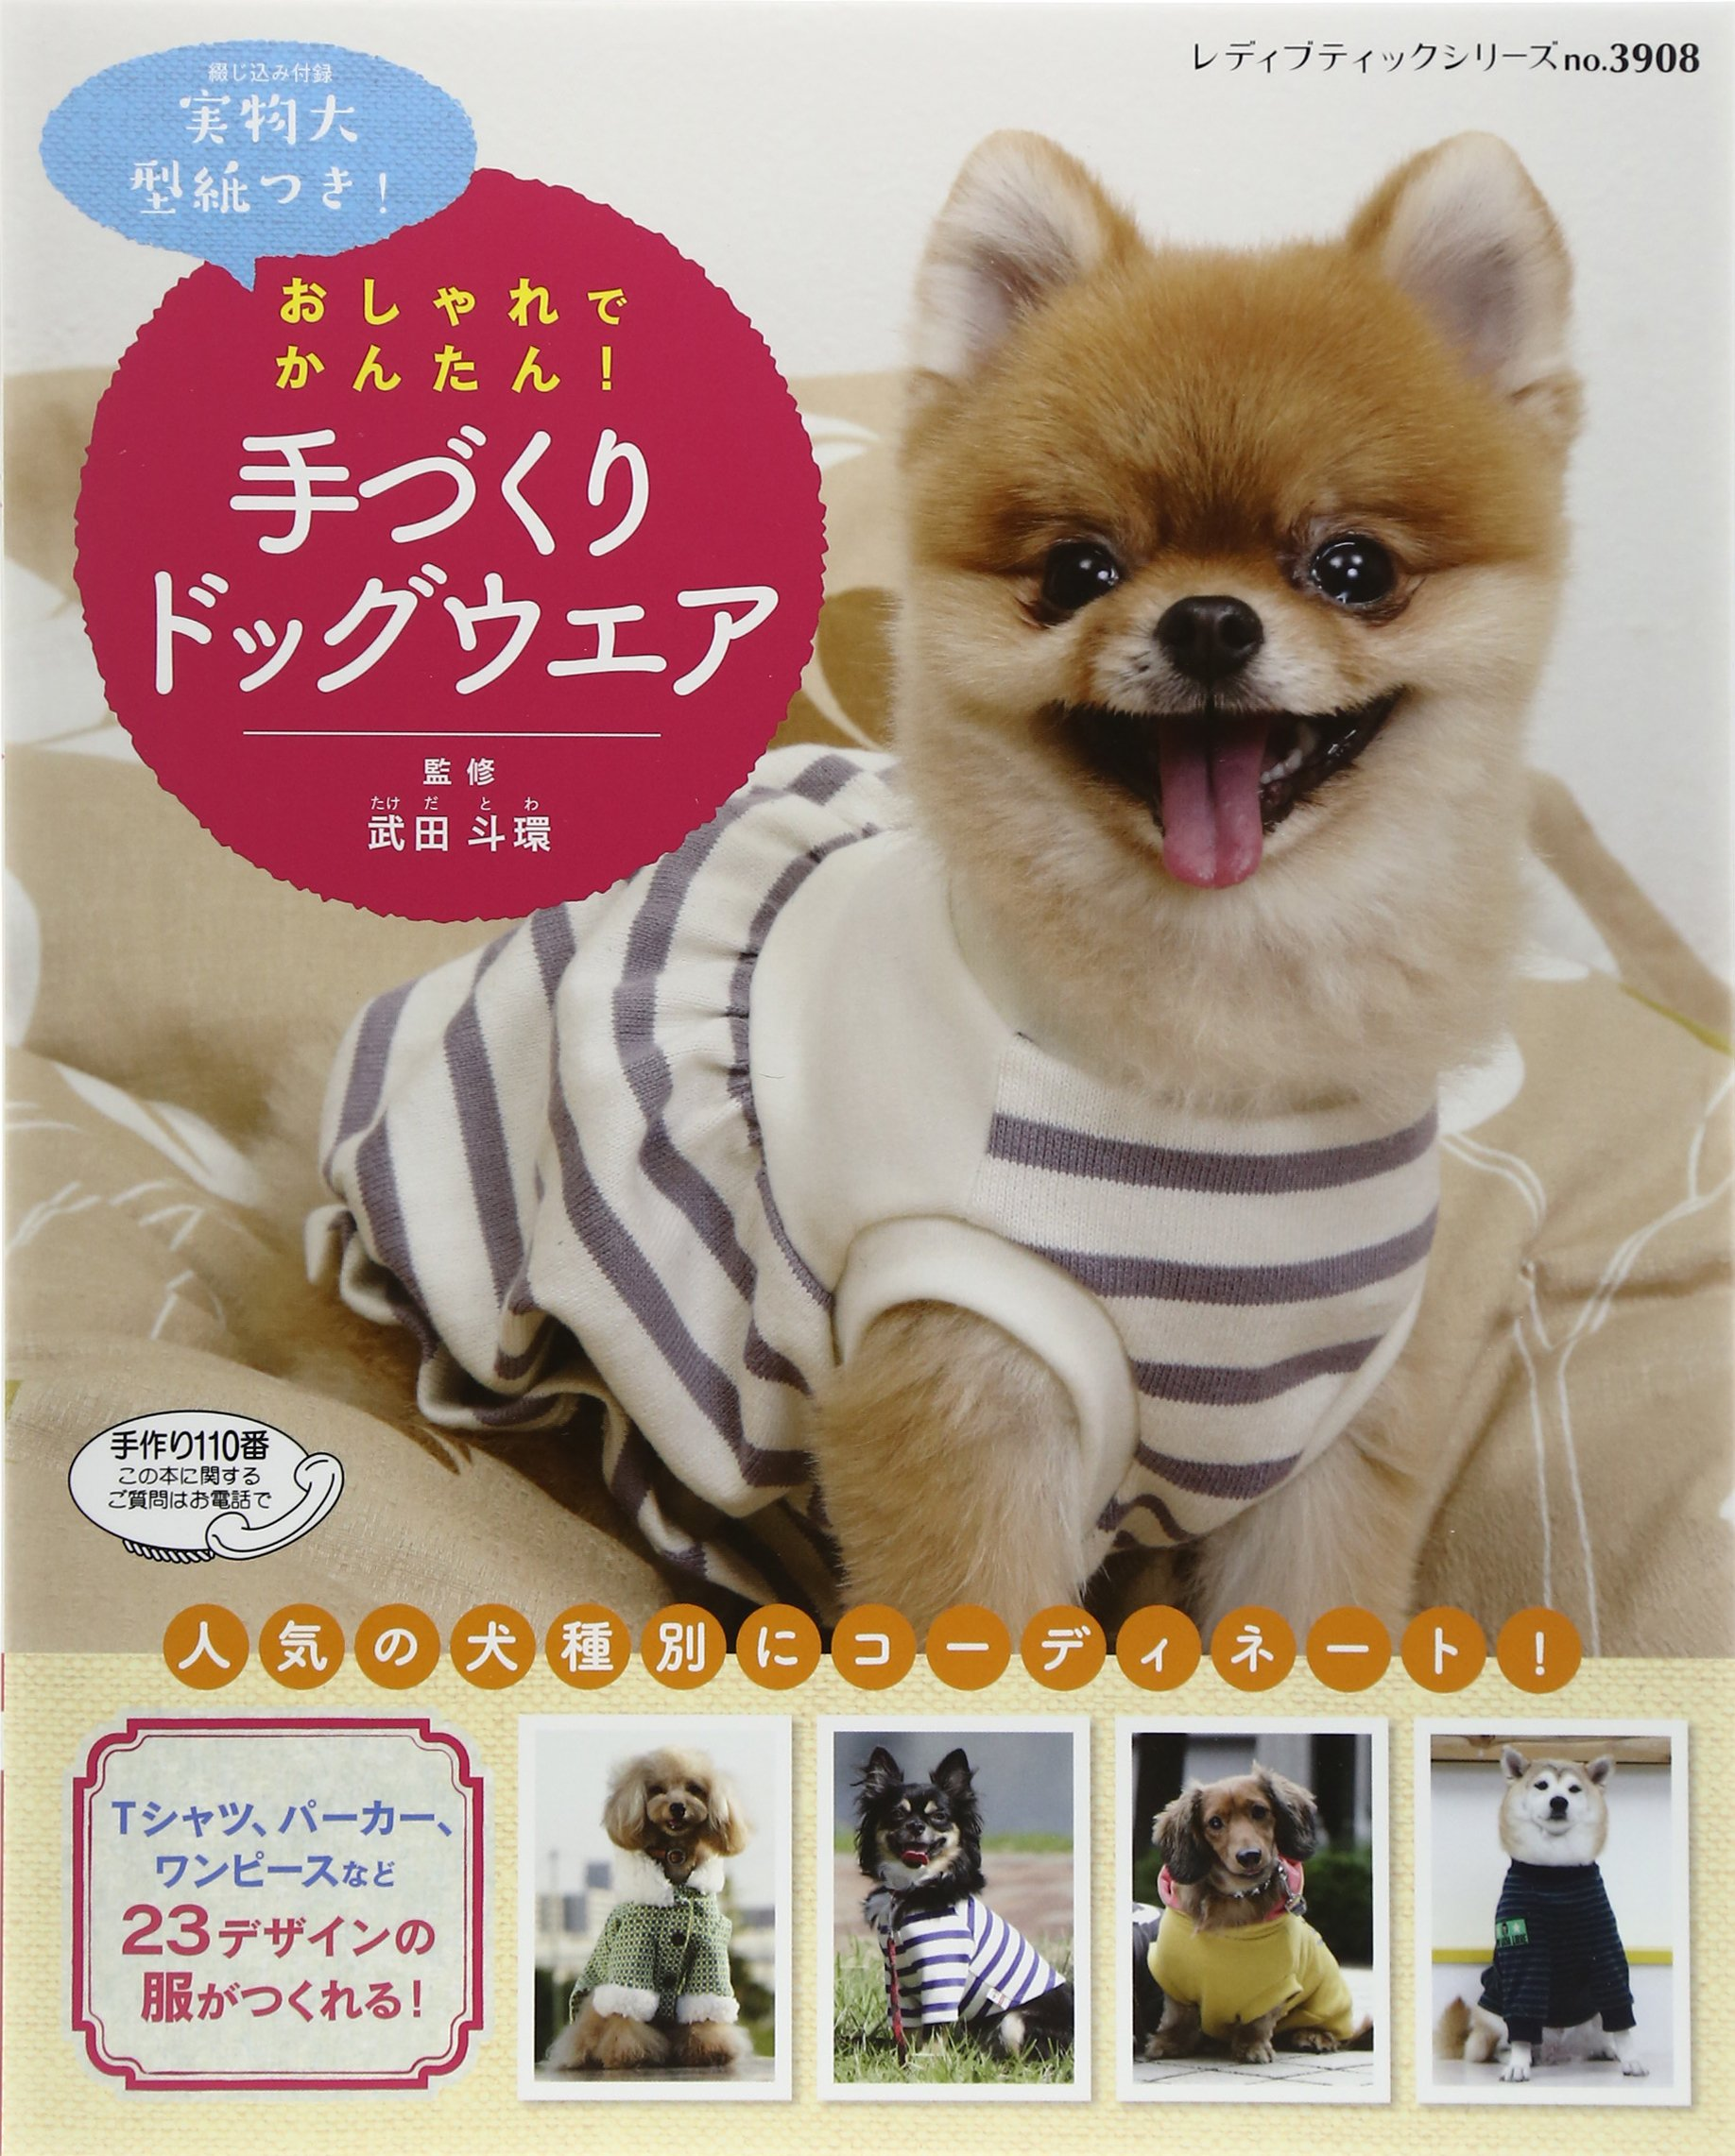 Fashionable and easy handmade dog software